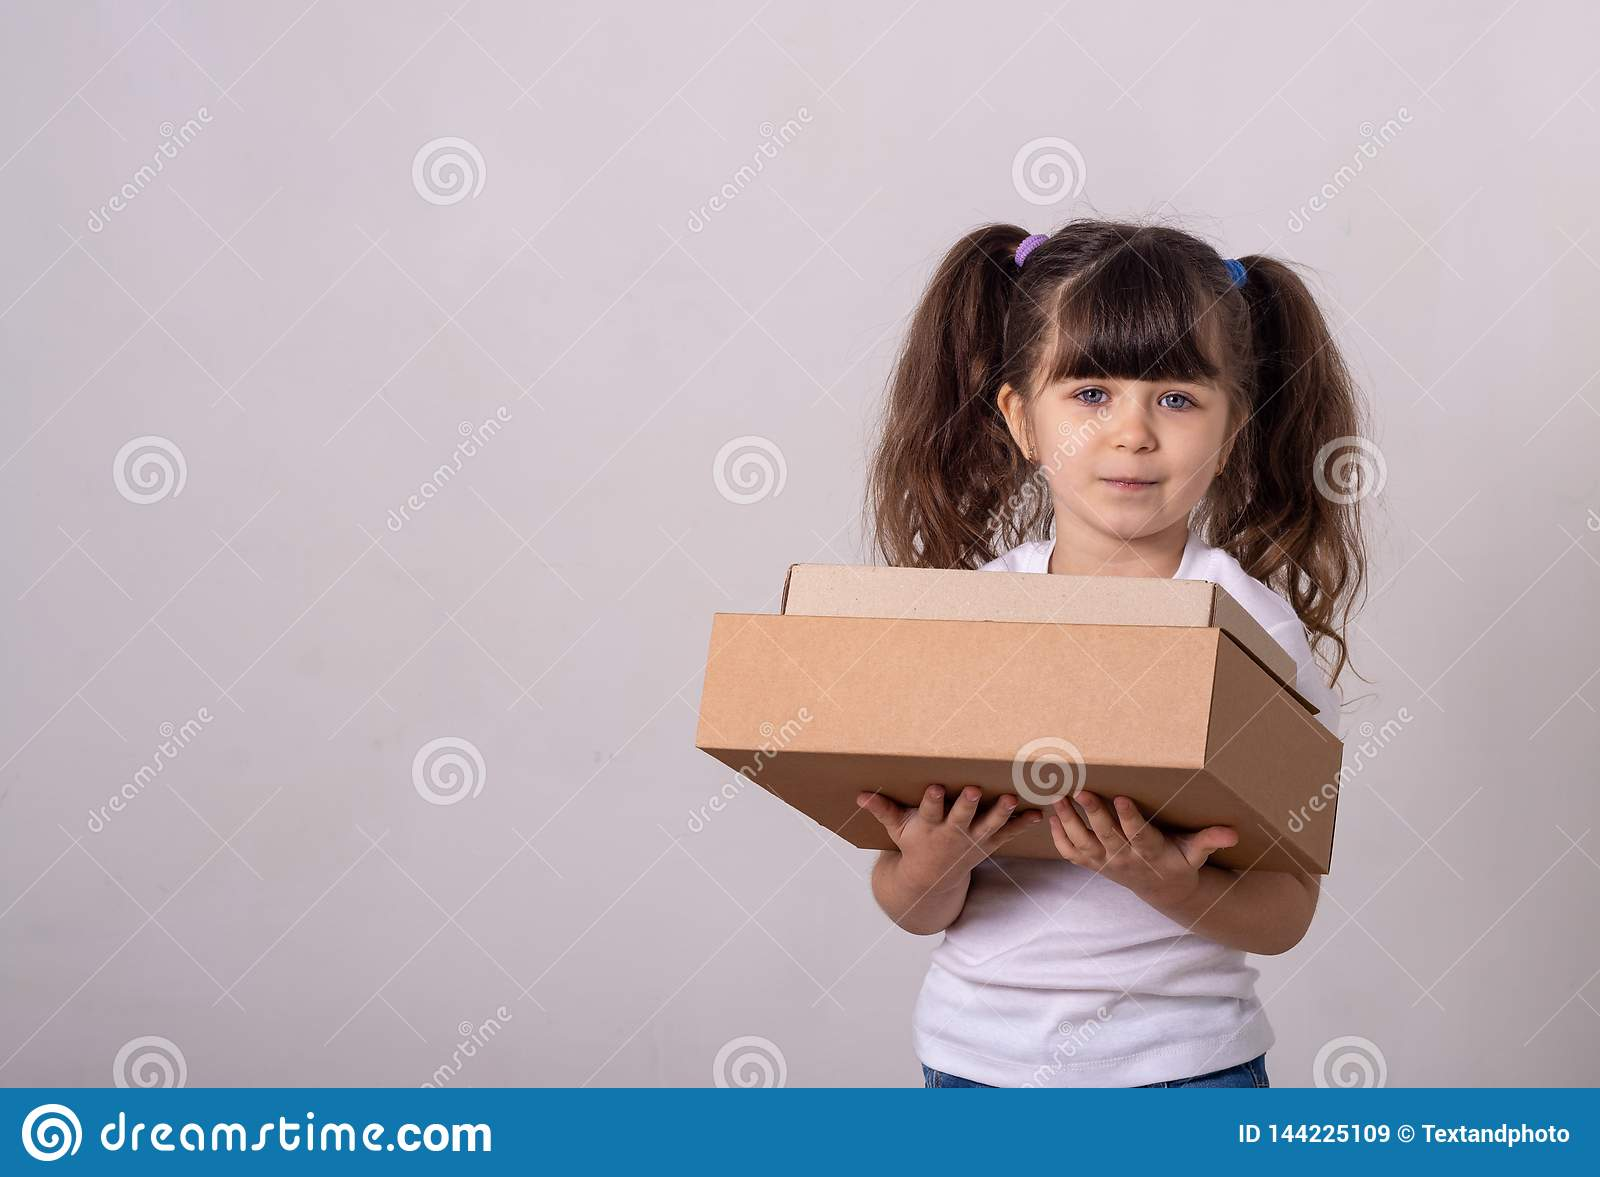 Kid delivering package over white background.